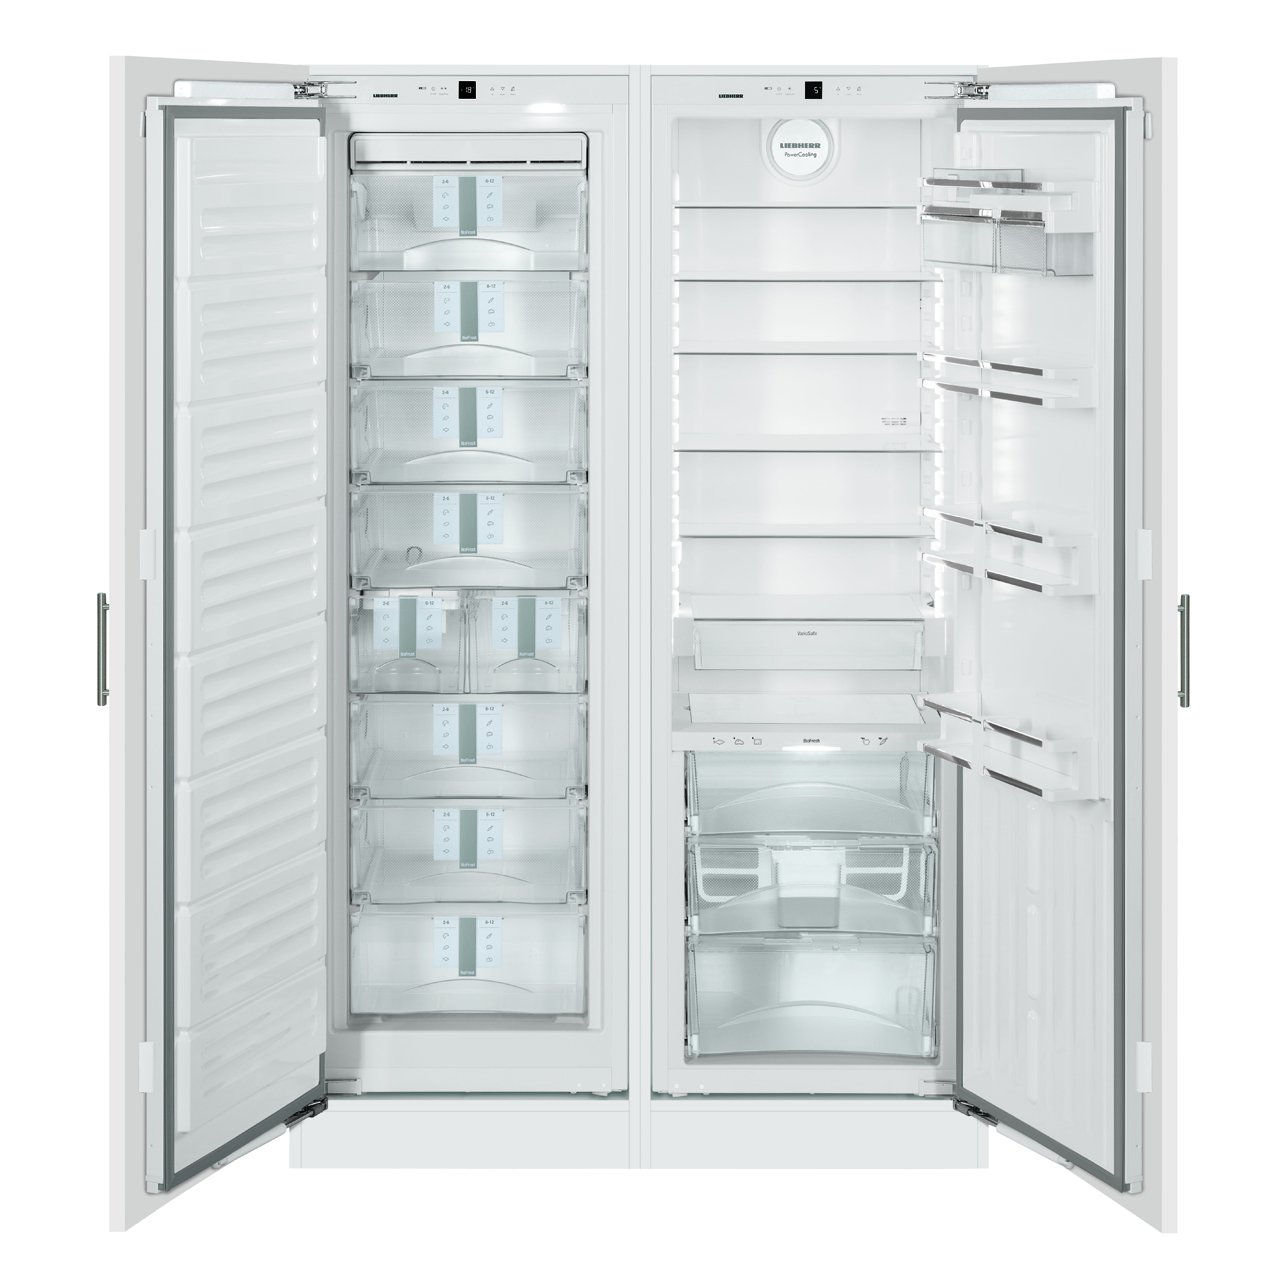 Buy The Liebherr Sbs70i4 American Fridge Freezers Delivery To Beckenham And The Surrounding Areas Budget Appliances Of Beckenham